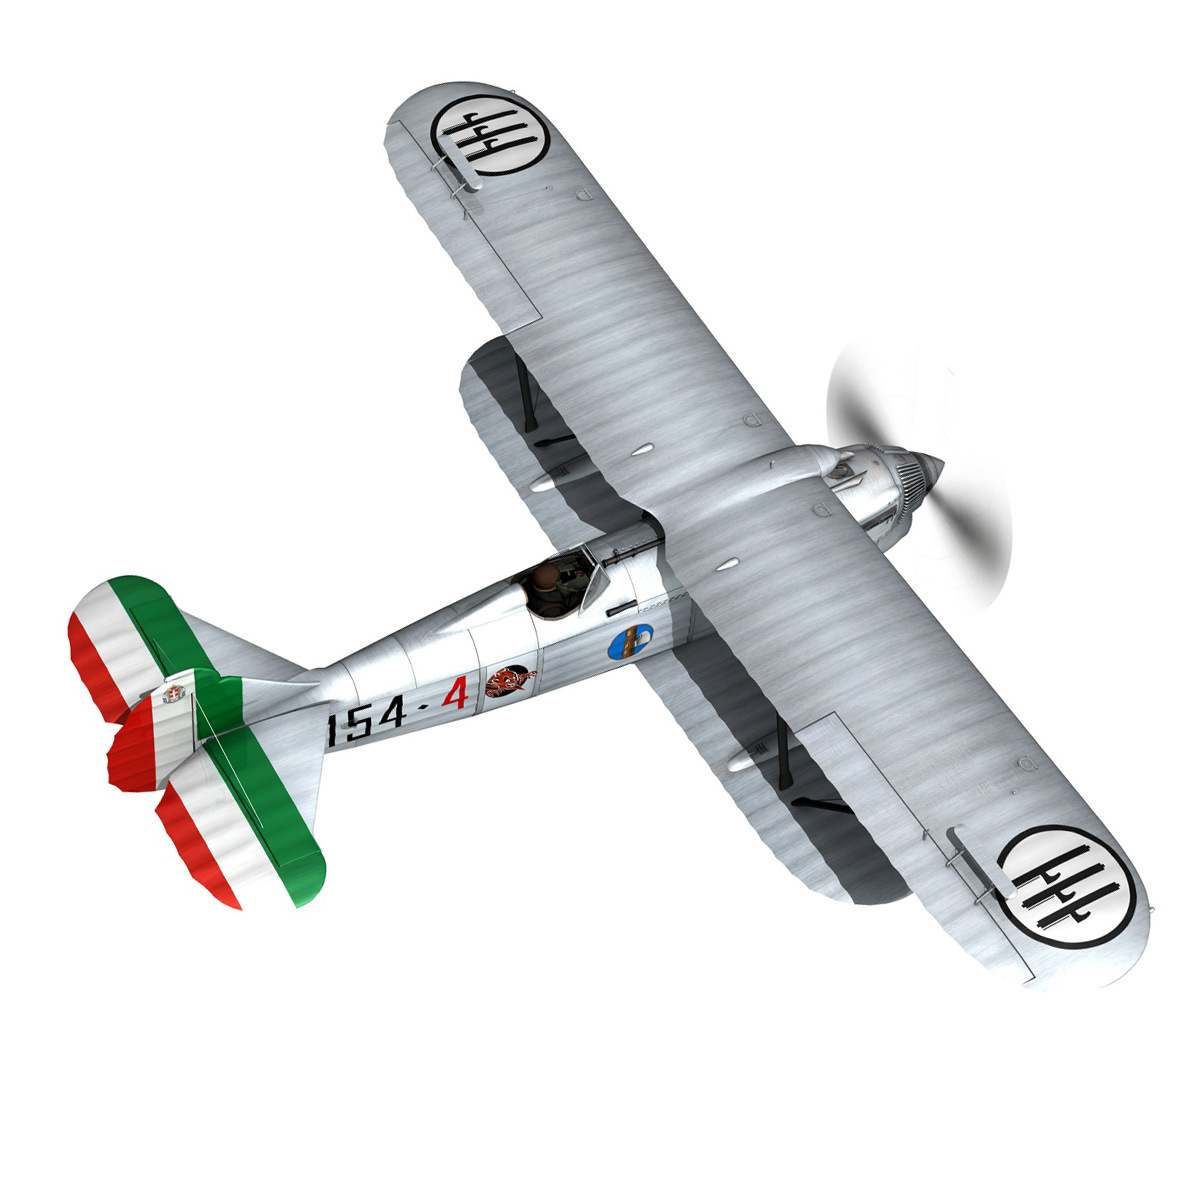 fiat cr.32 – italy airforce – 154 squadriglia 3d model fbx c4d lwo obj 268132